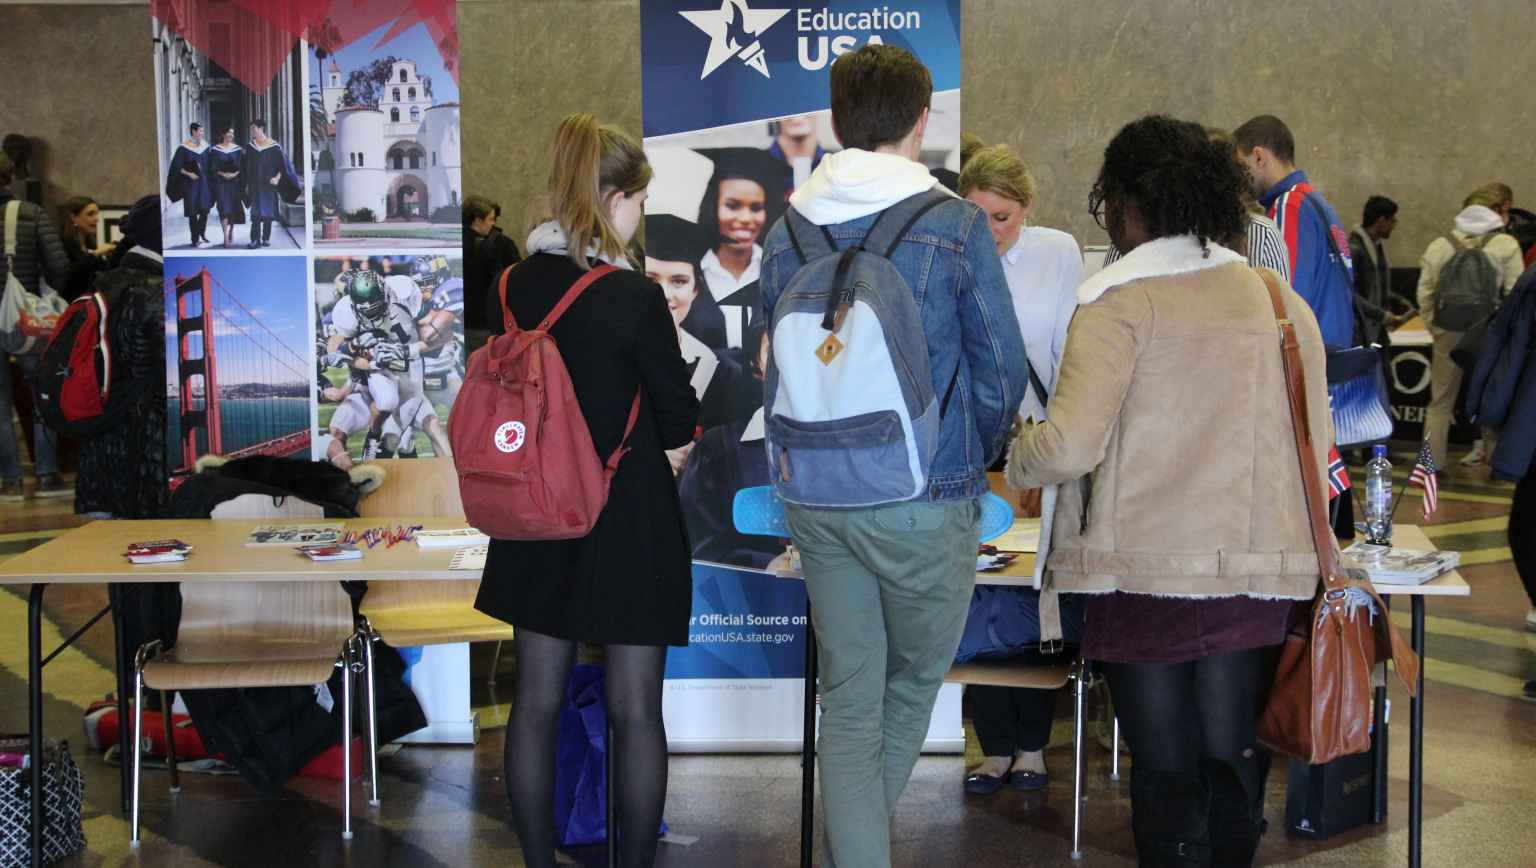 College Day Scandinavia in 2017